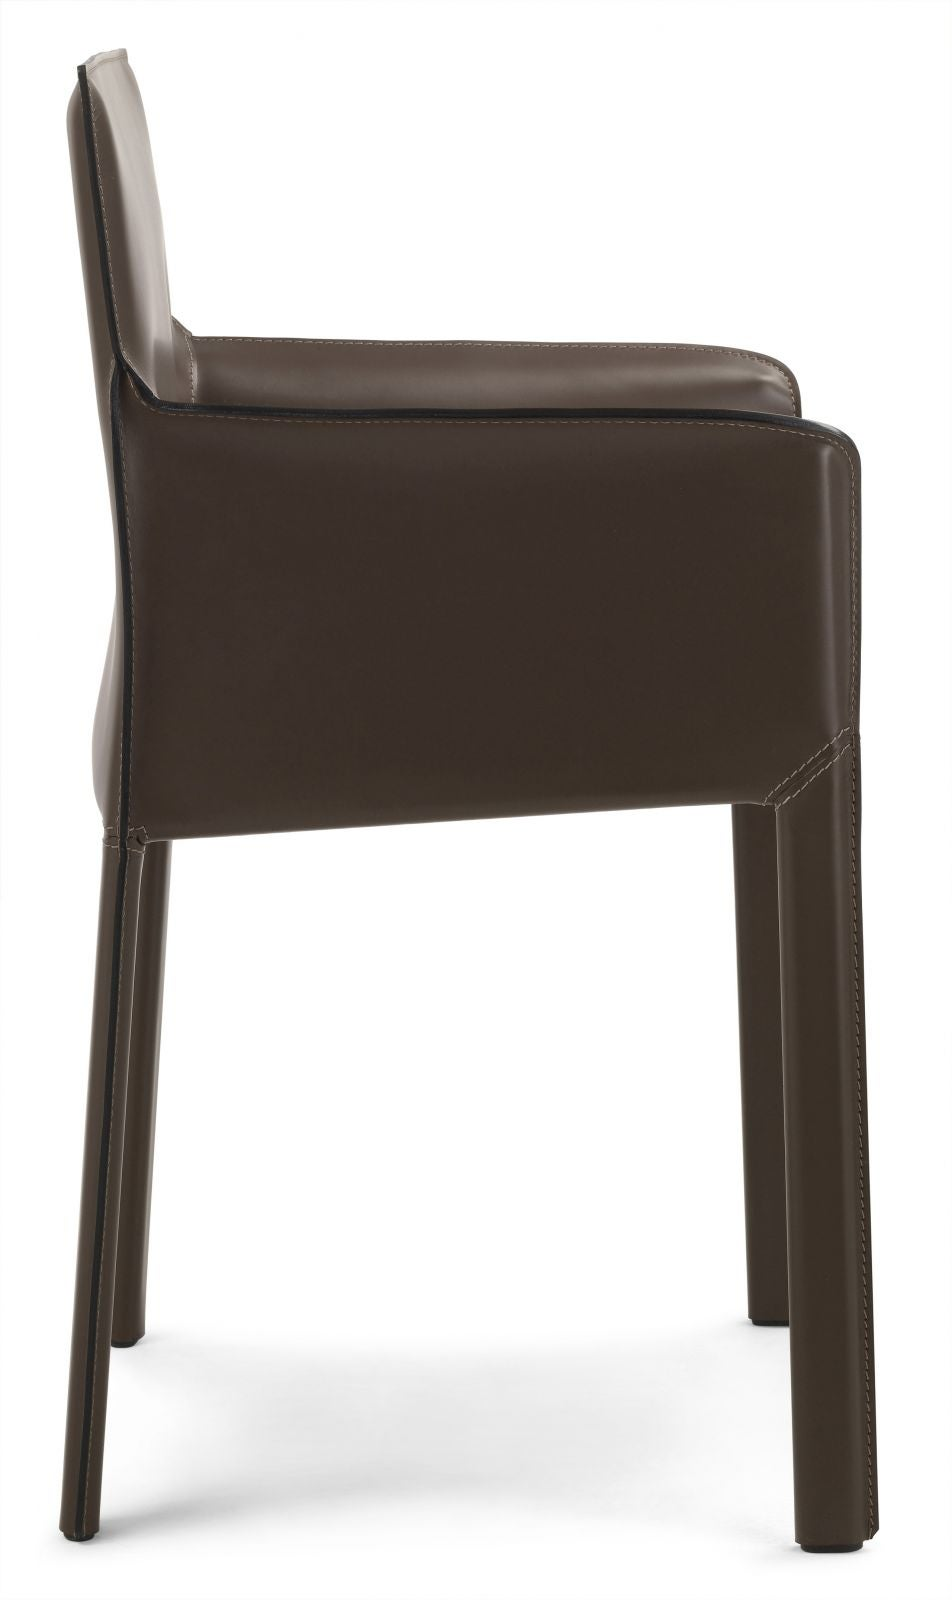 Leather Dining Room Chairs Modern Italian Dining Chair Italian Furniture Design Made In Italy